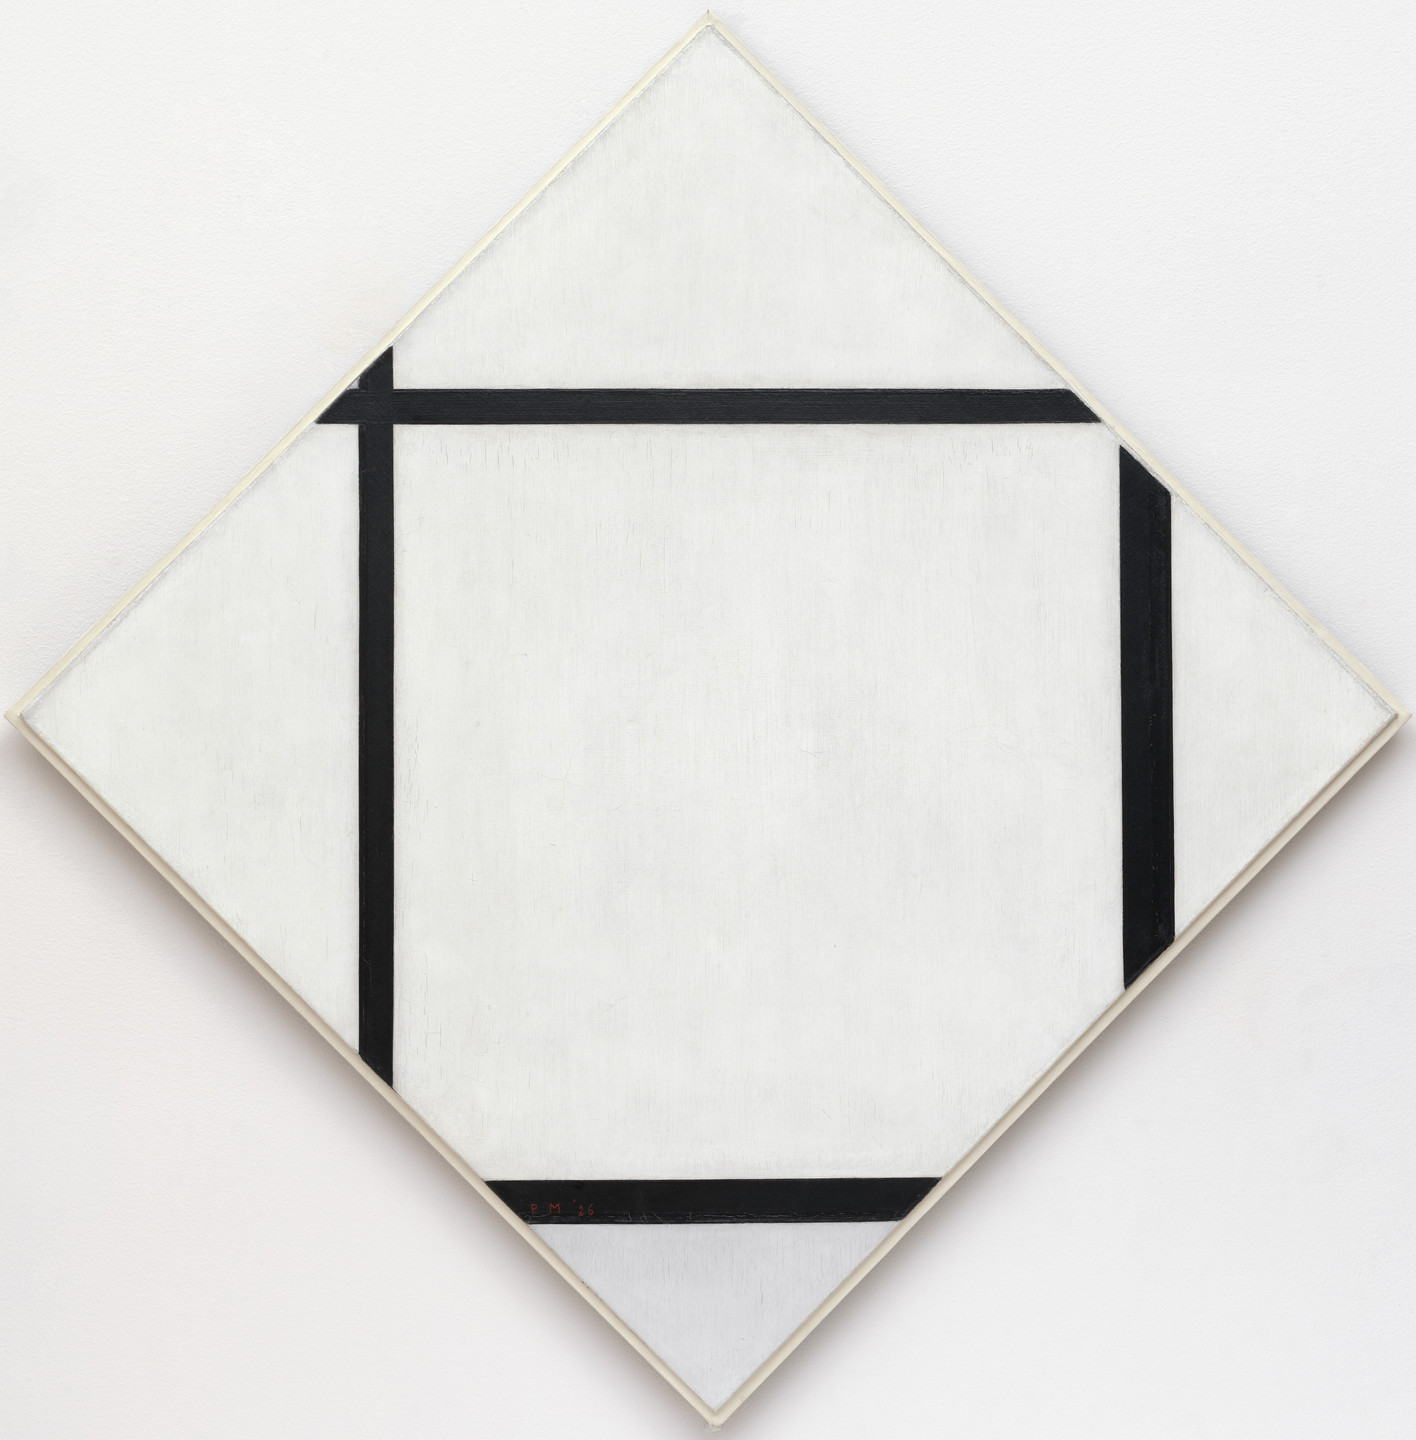 Piet Mondrian. Tableau I: Lozenge with Four Lines and Gray. 1926